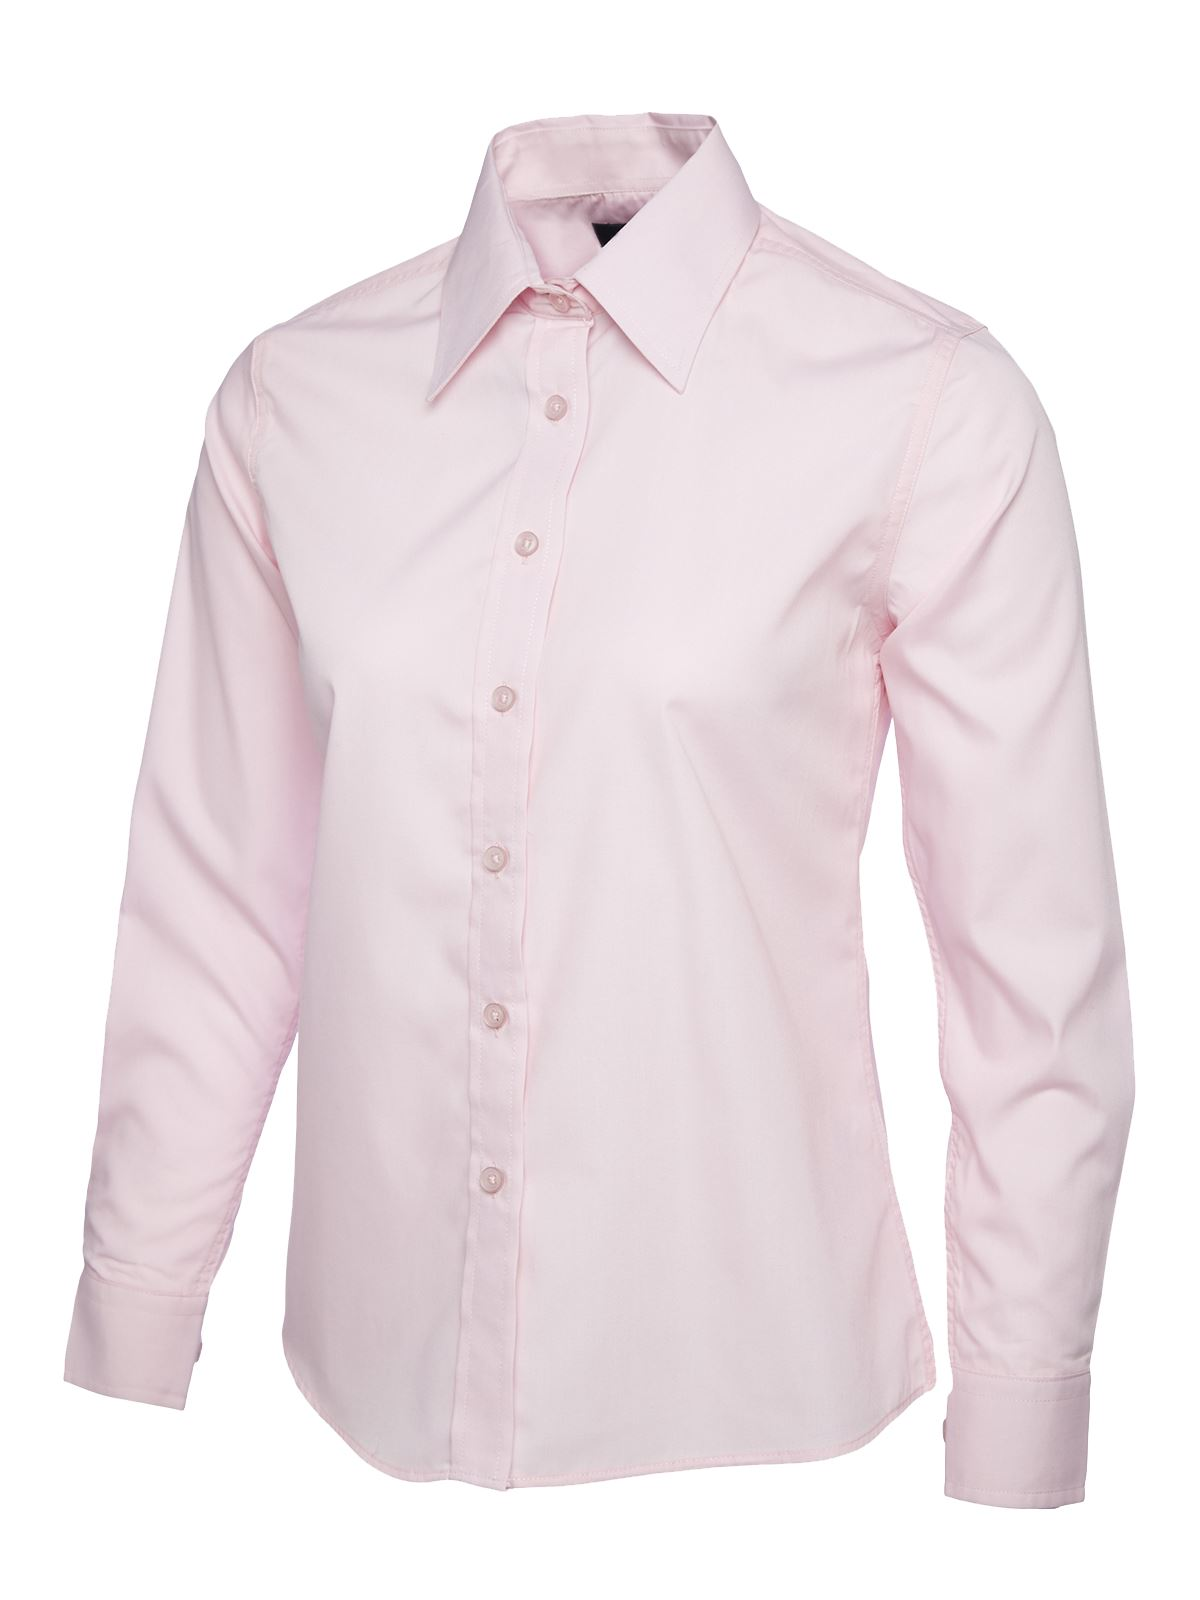 Uneek-Ladies-Poplin-Full-Sleeve-Formal-Shirt-Work-Office-Long-School-Lot